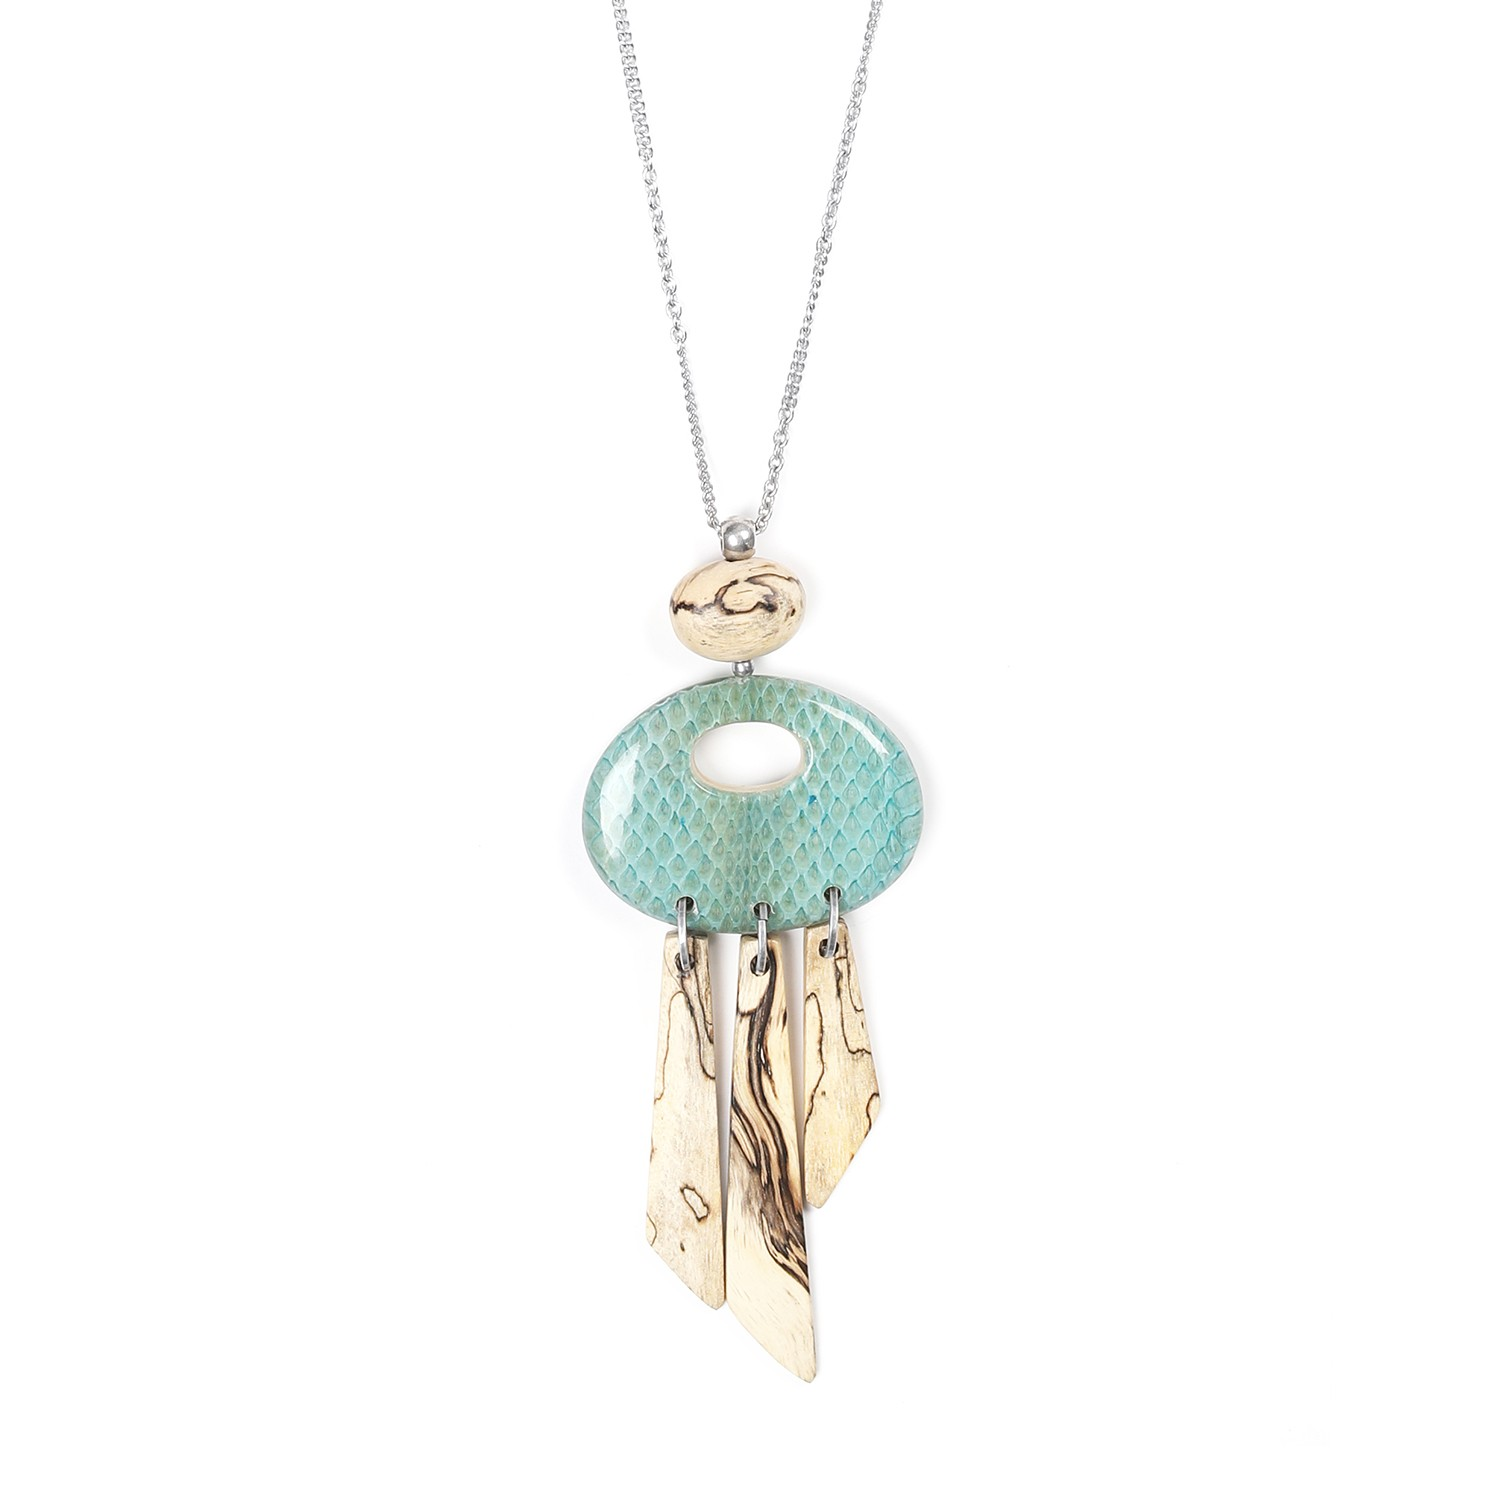 TAHOE long necklace